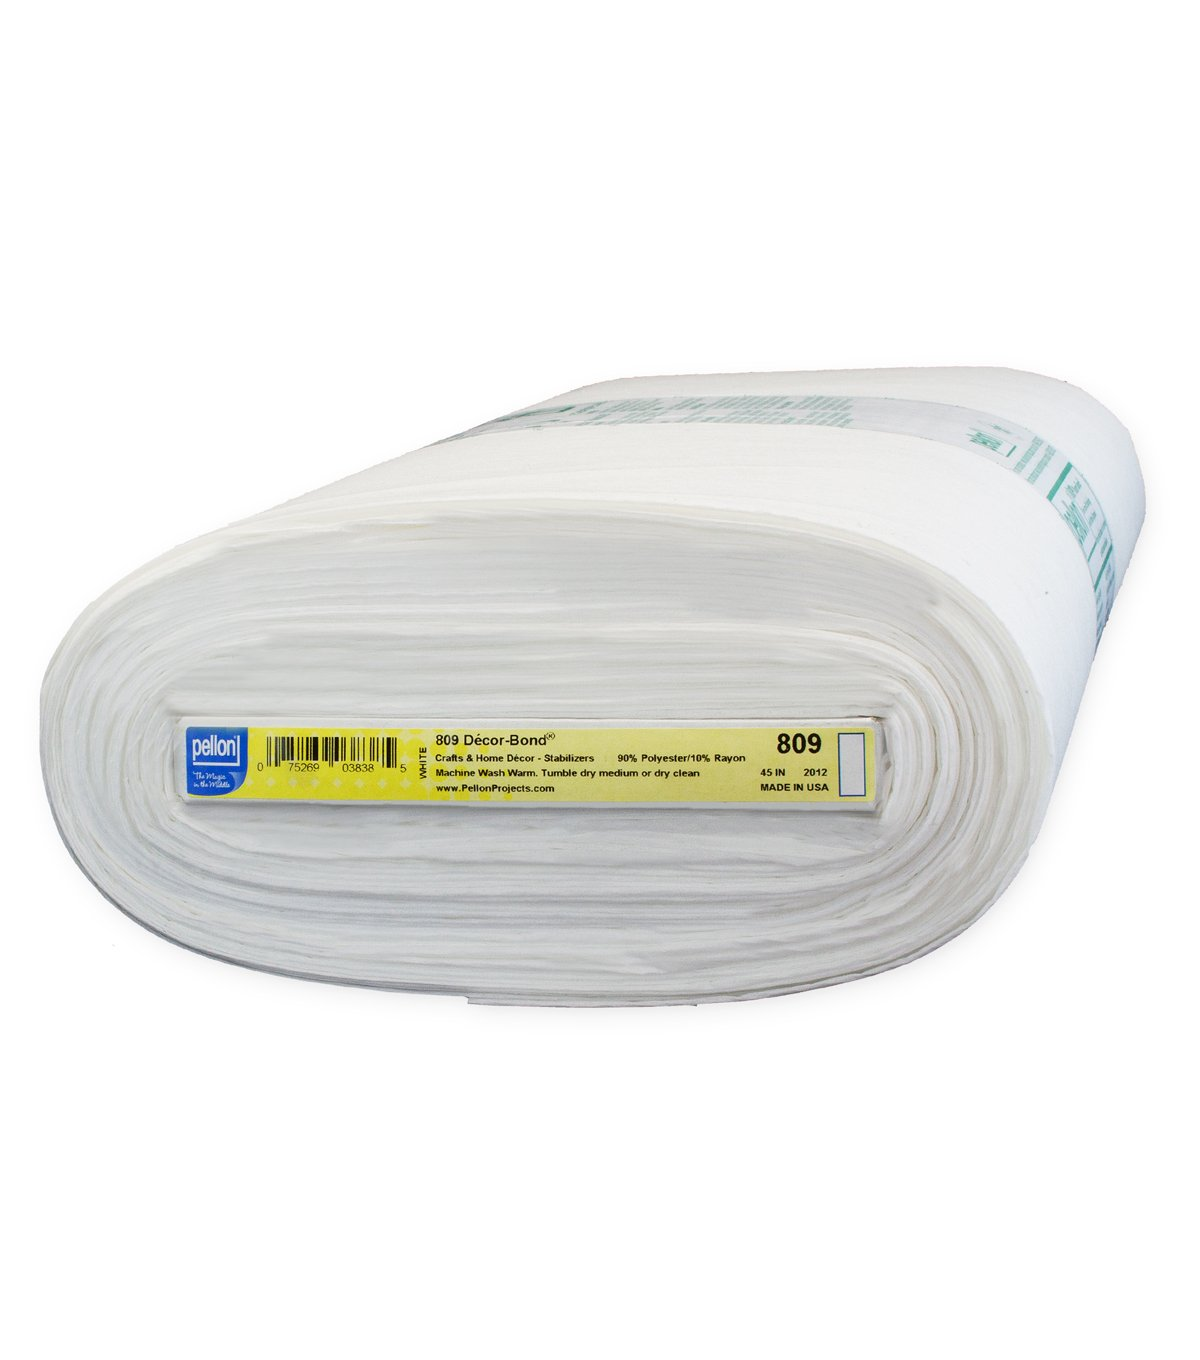 Pellon 809 Decor Bond 1-Sided Fusible `